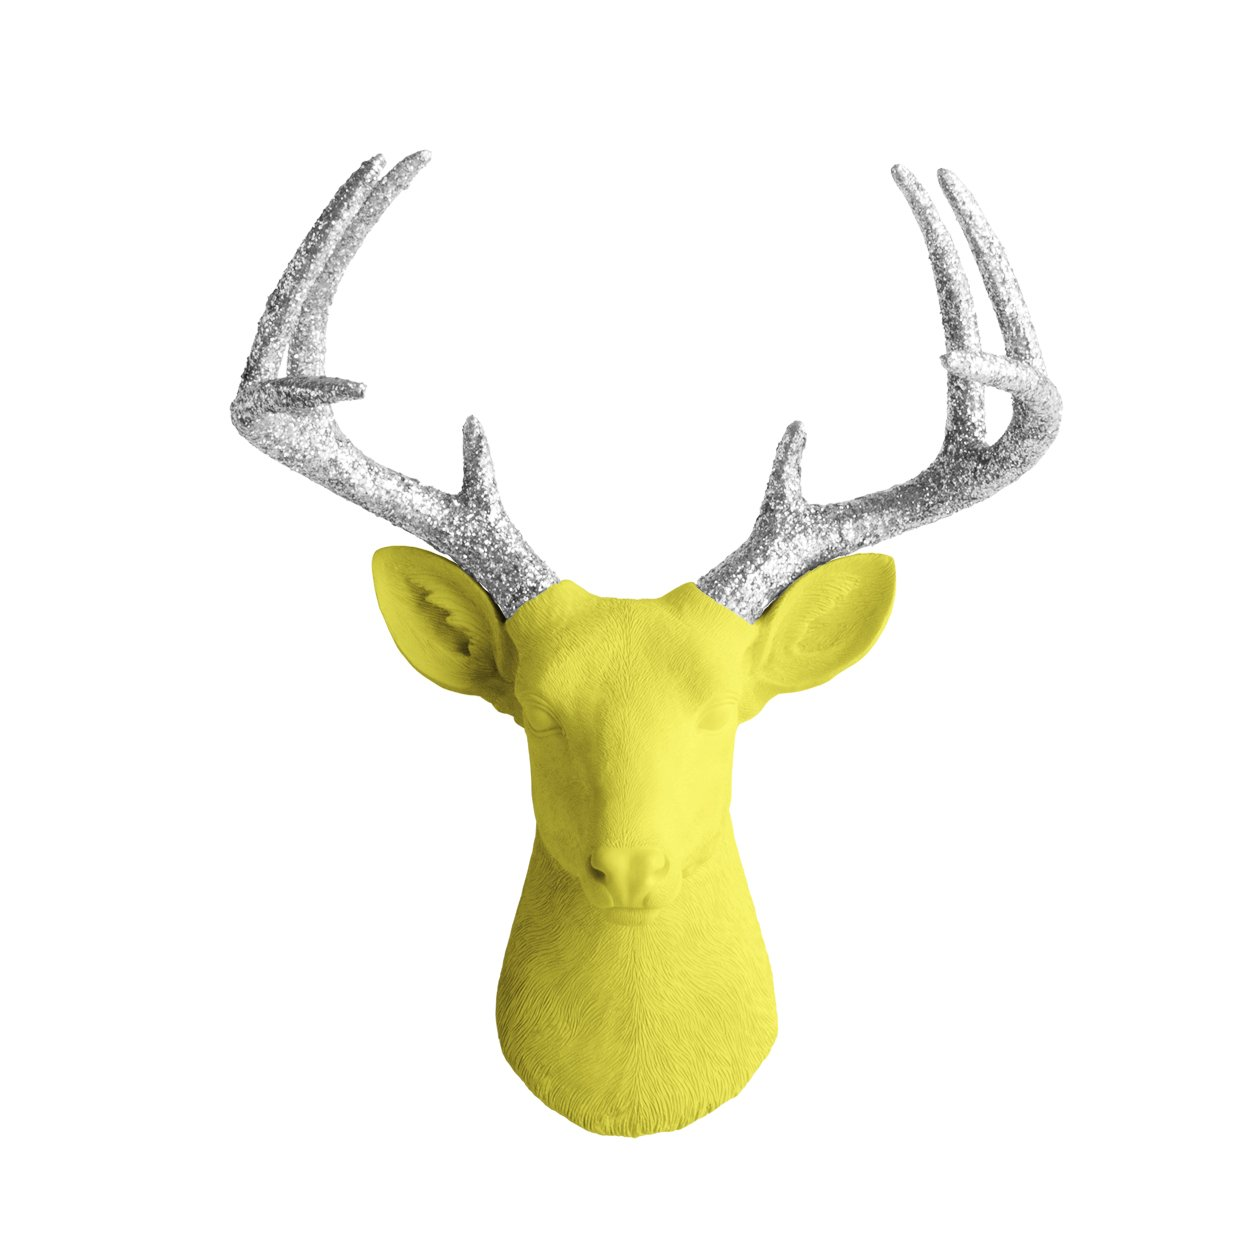 Amazon.com: Wall Charmers Deer in Yellow + Silver Glitter - Faux ...